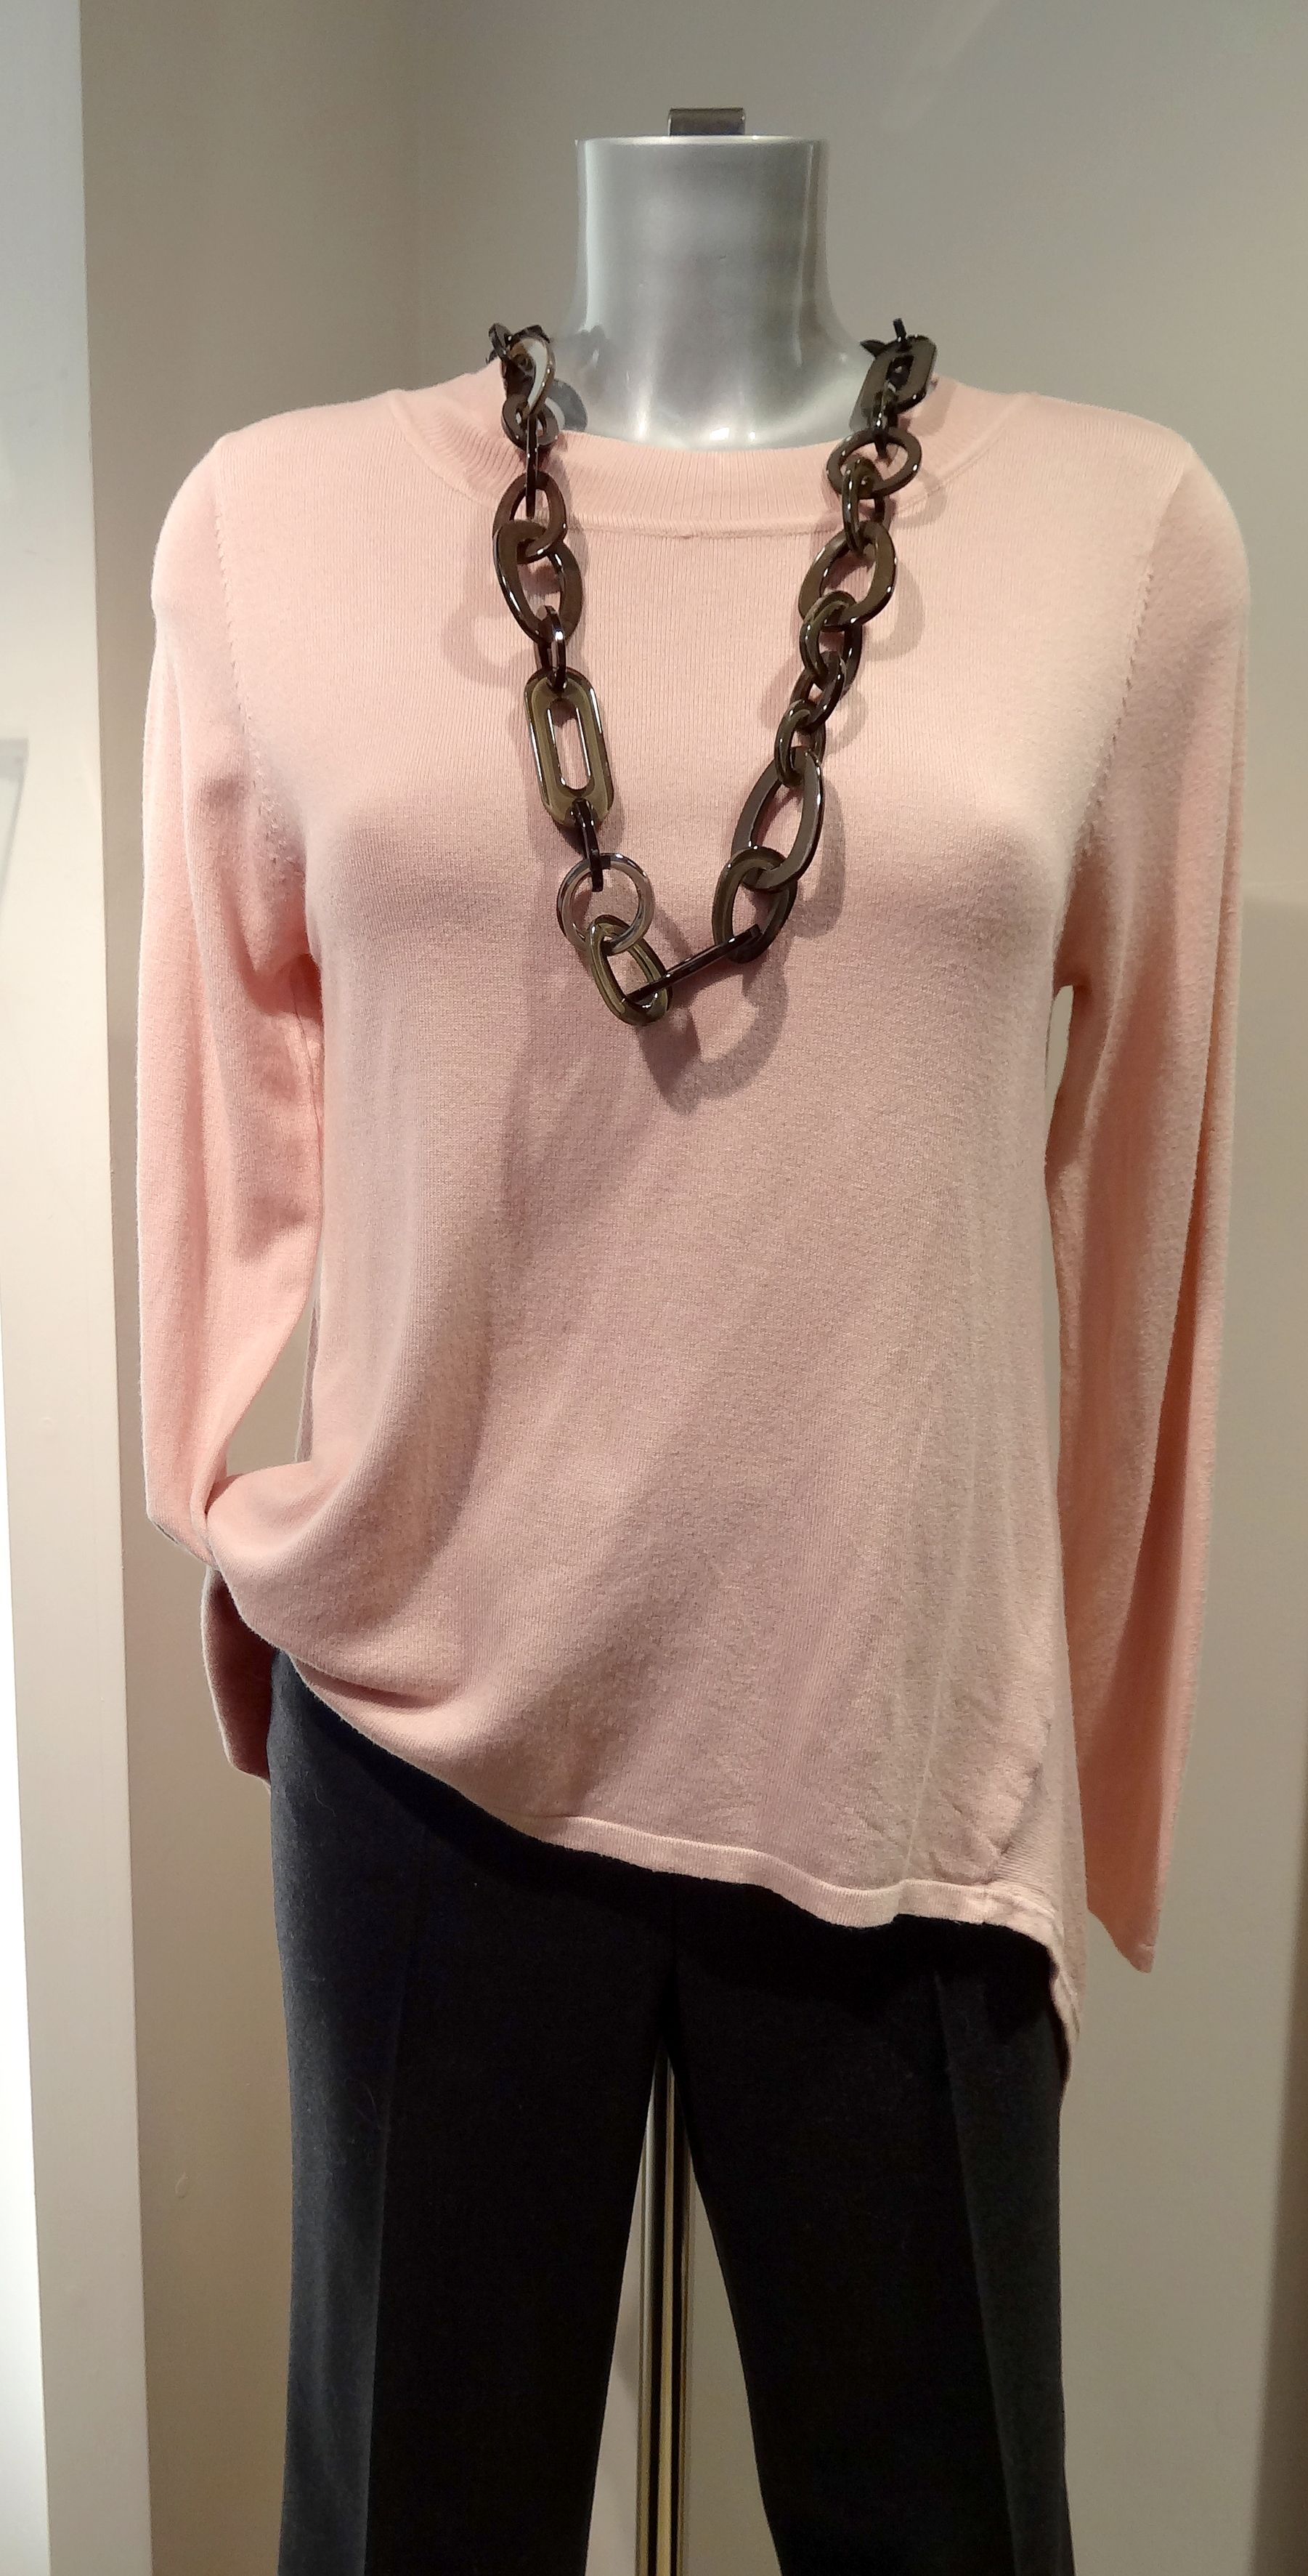 D.E.C.K. by Decollage dip back jumper – £59, Gardeur trousers – £99, Sarl necklace – £35. Available at Sister